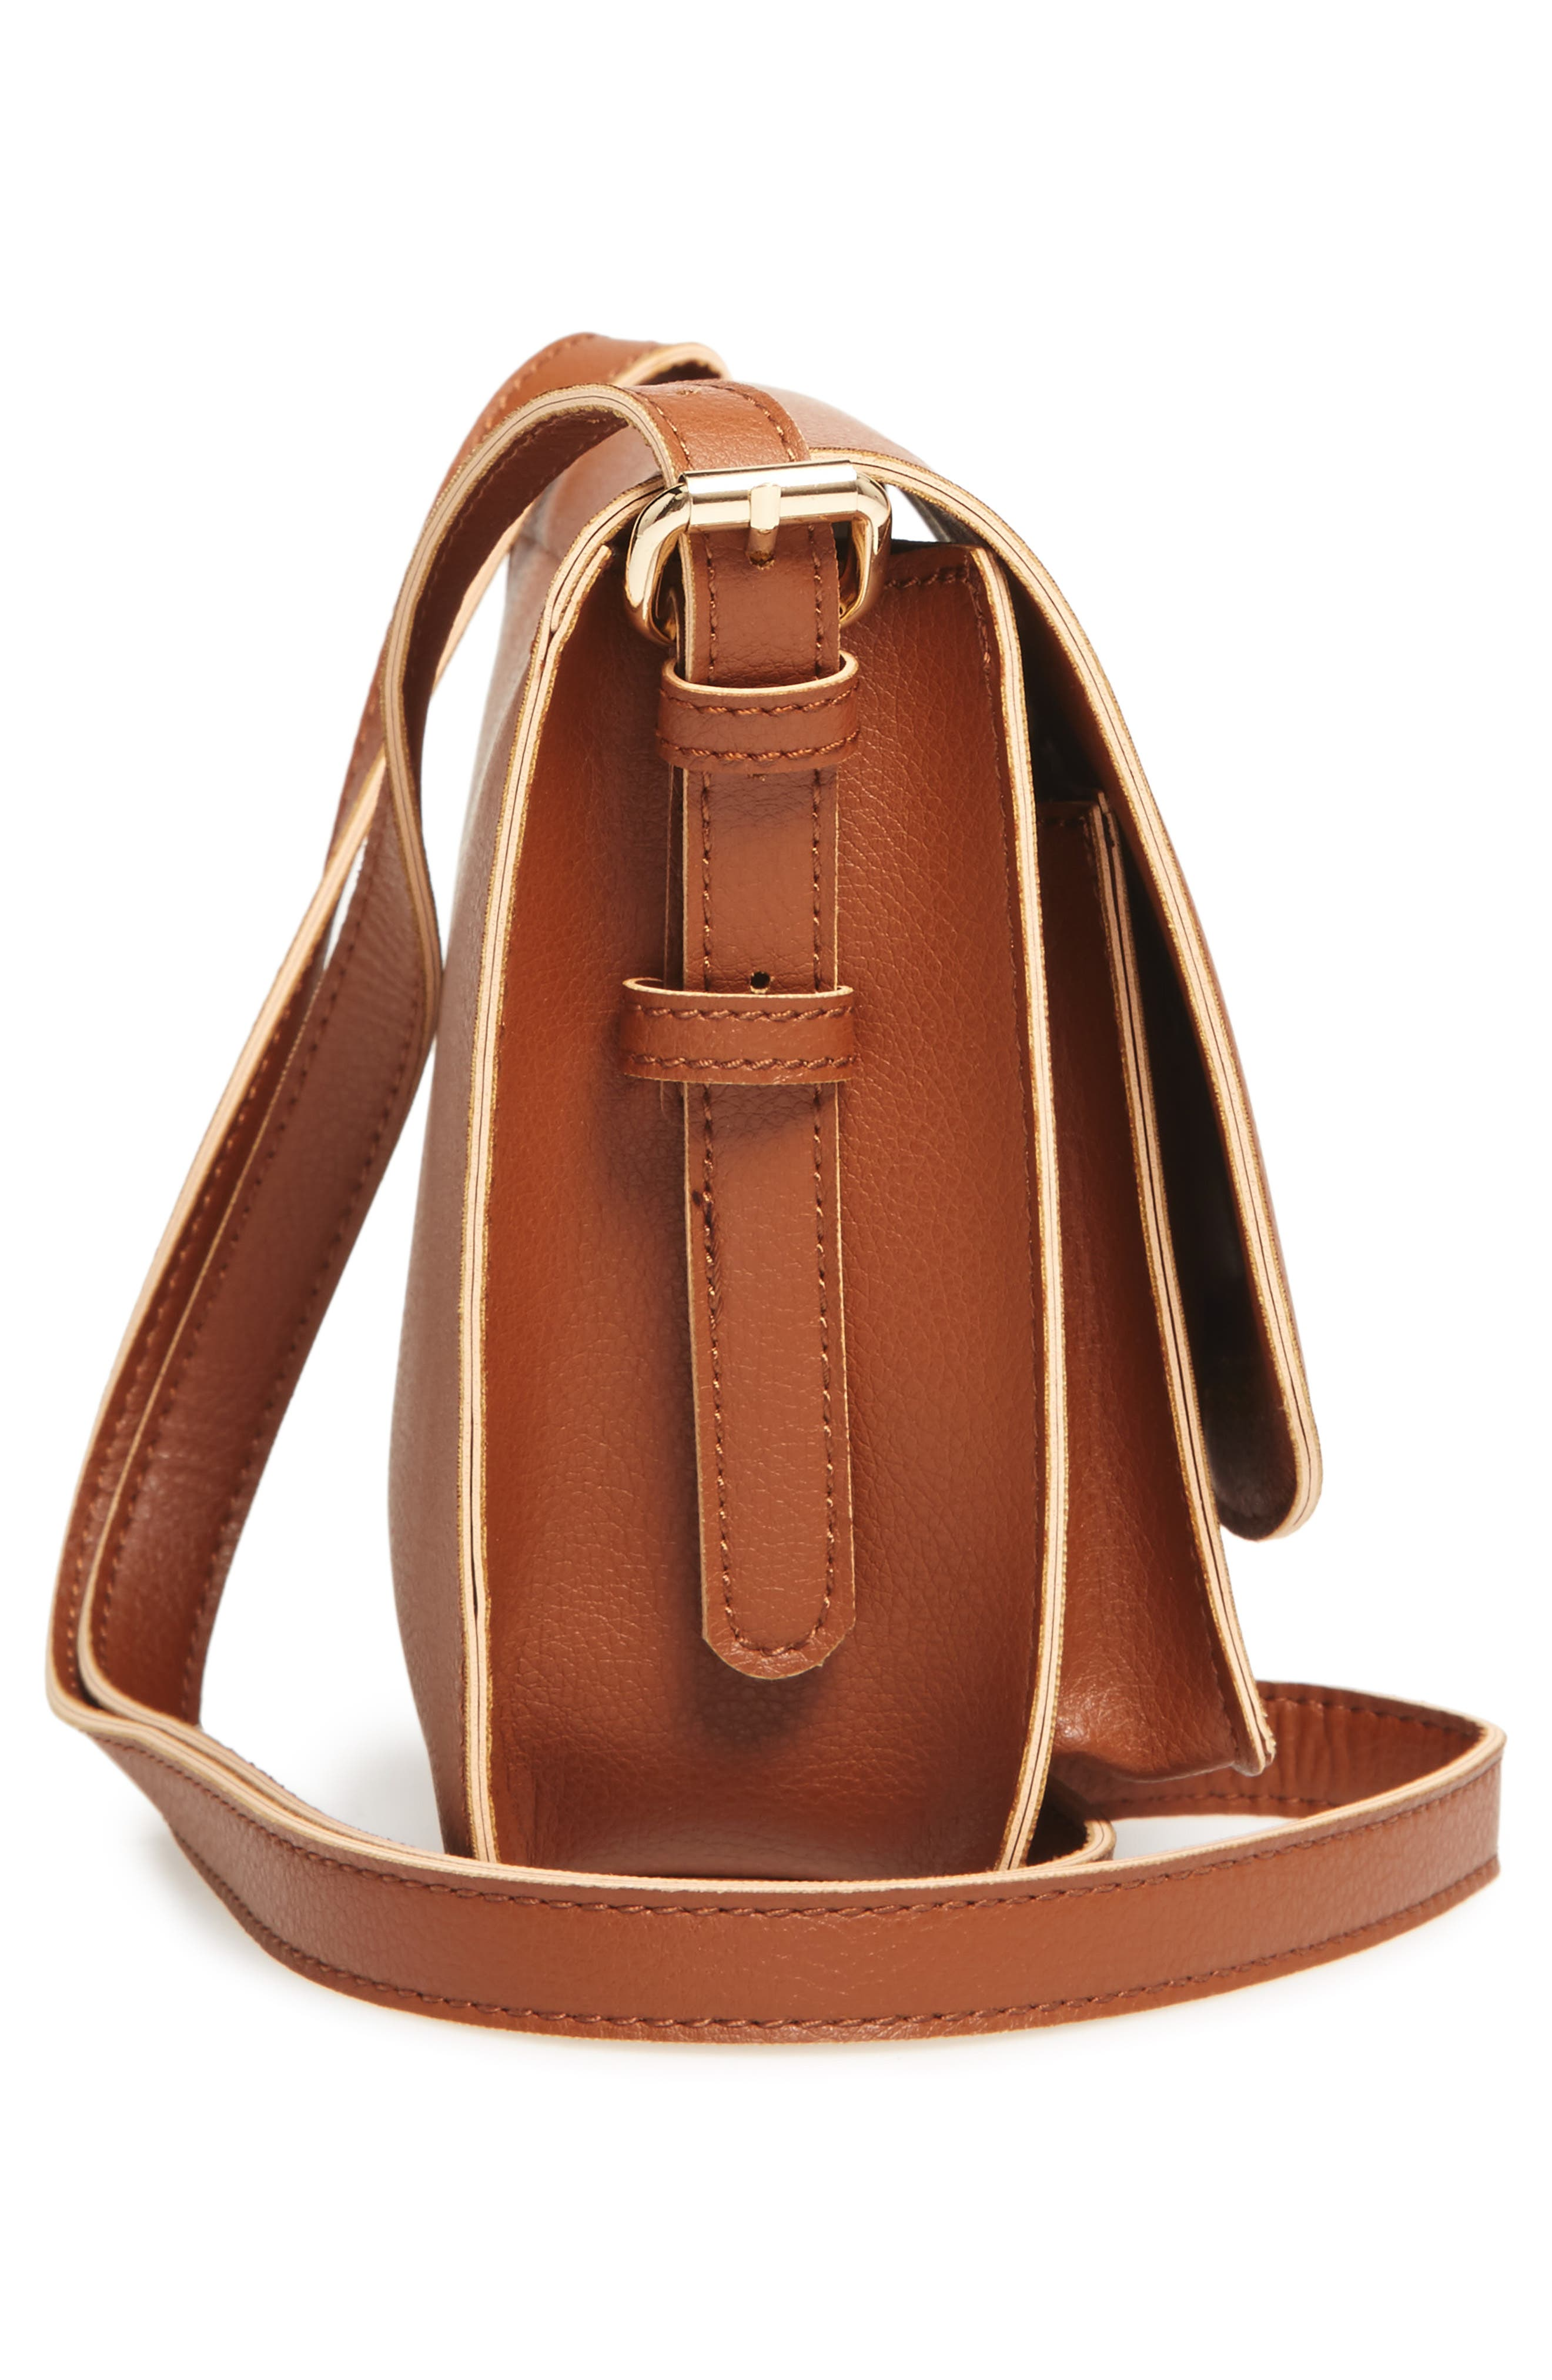 'Michelle' Faux Leather Crossbody Bag,                             Alternate thumbnail 5, color,                             New Cognac